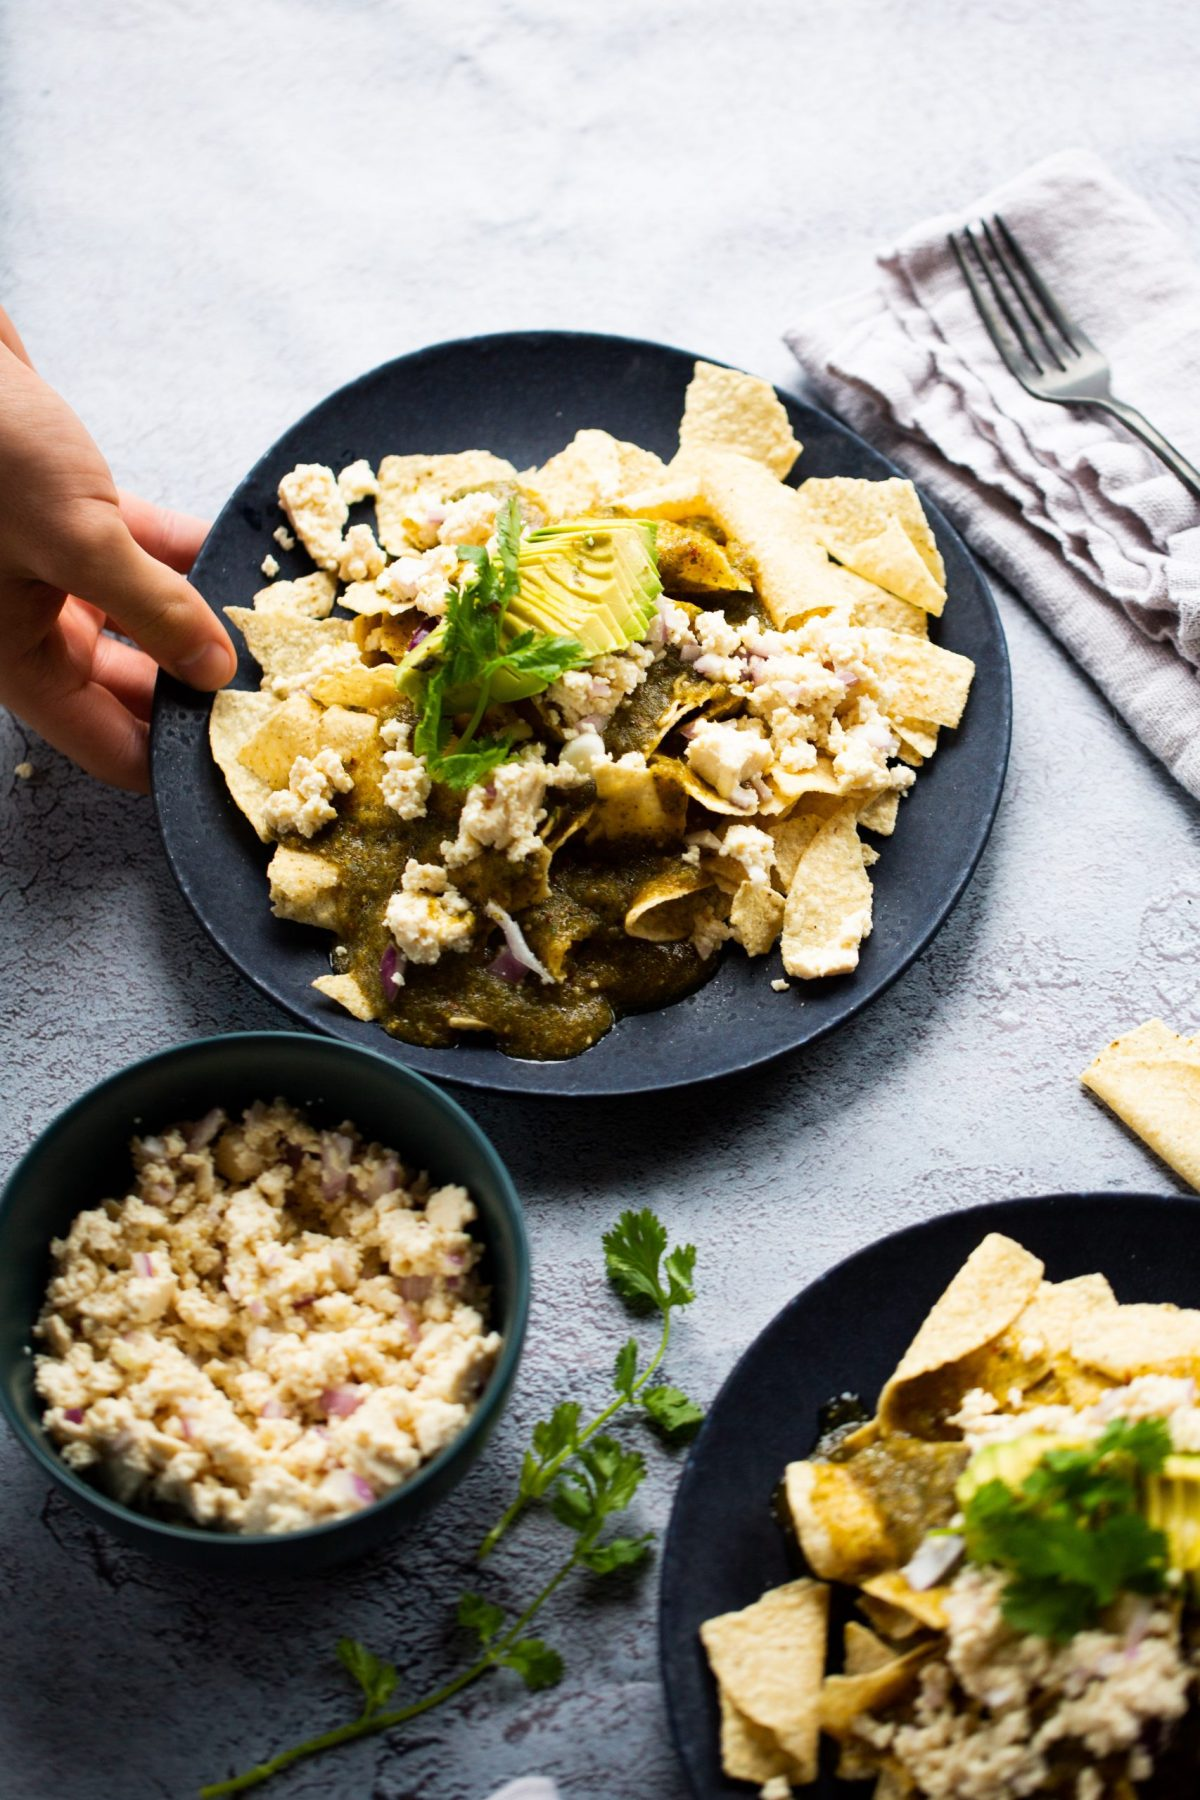 chilaquiles with Chipotle tomatillo sauce